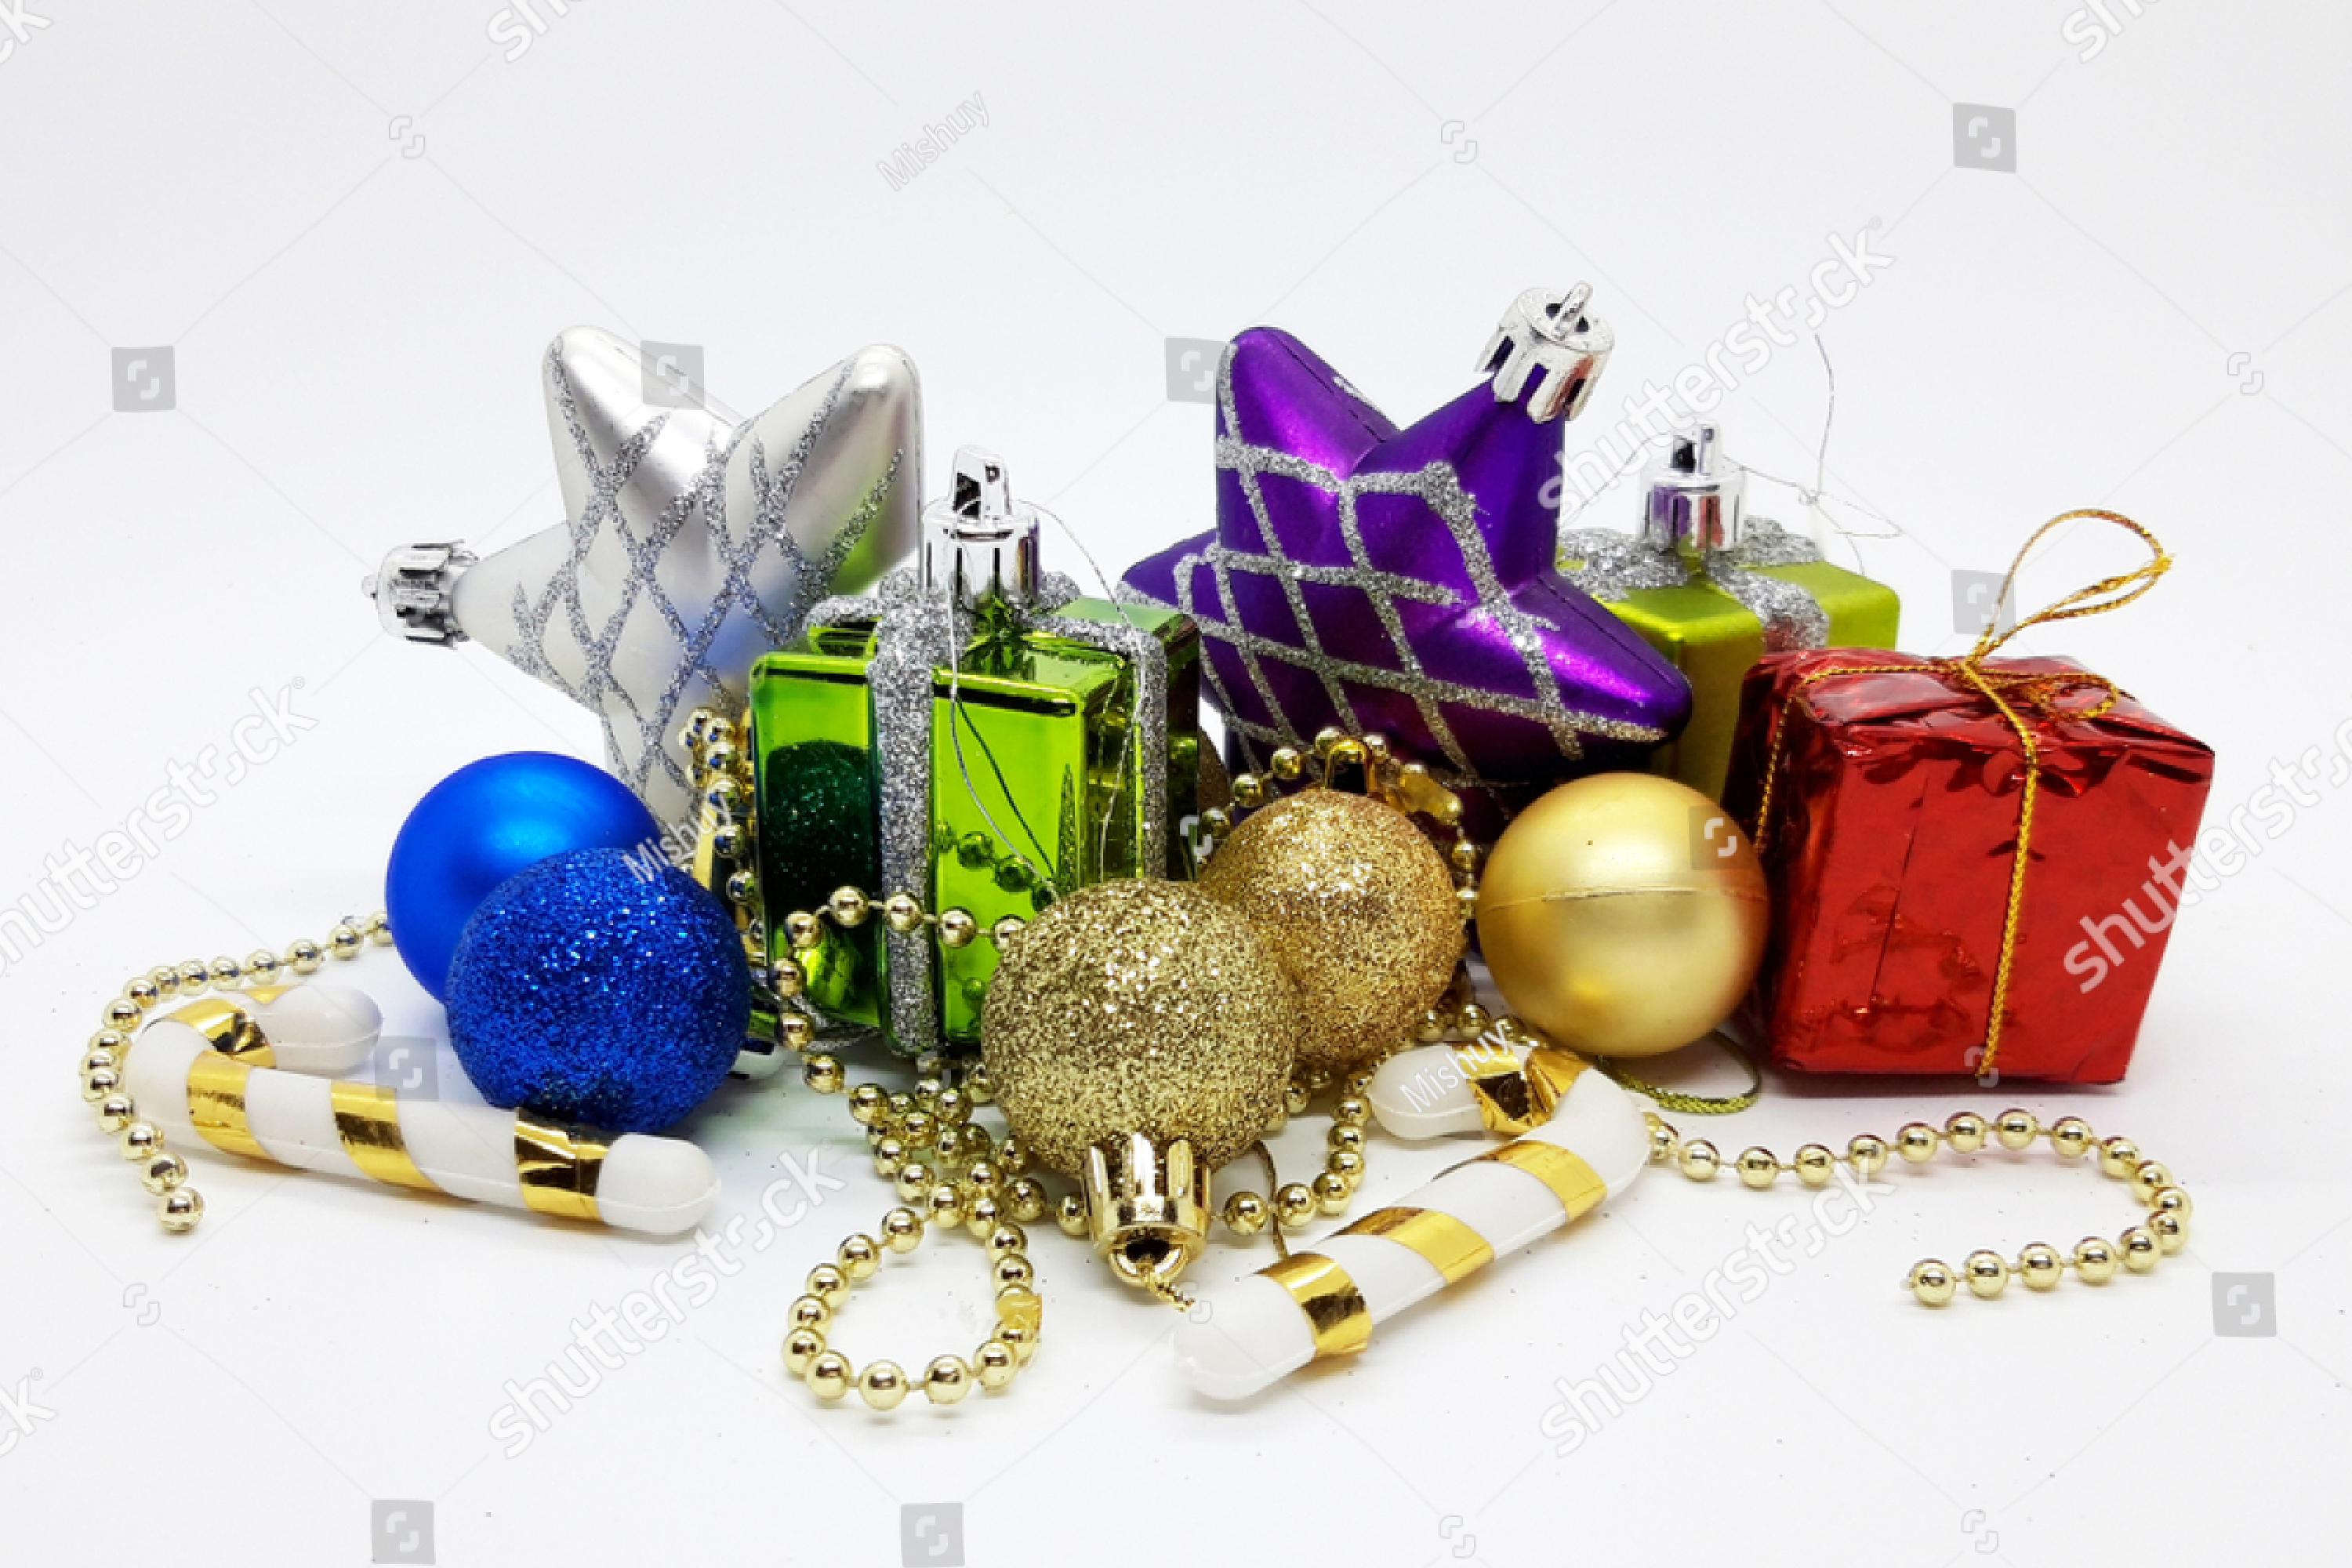 Christmas ornaments example image 1